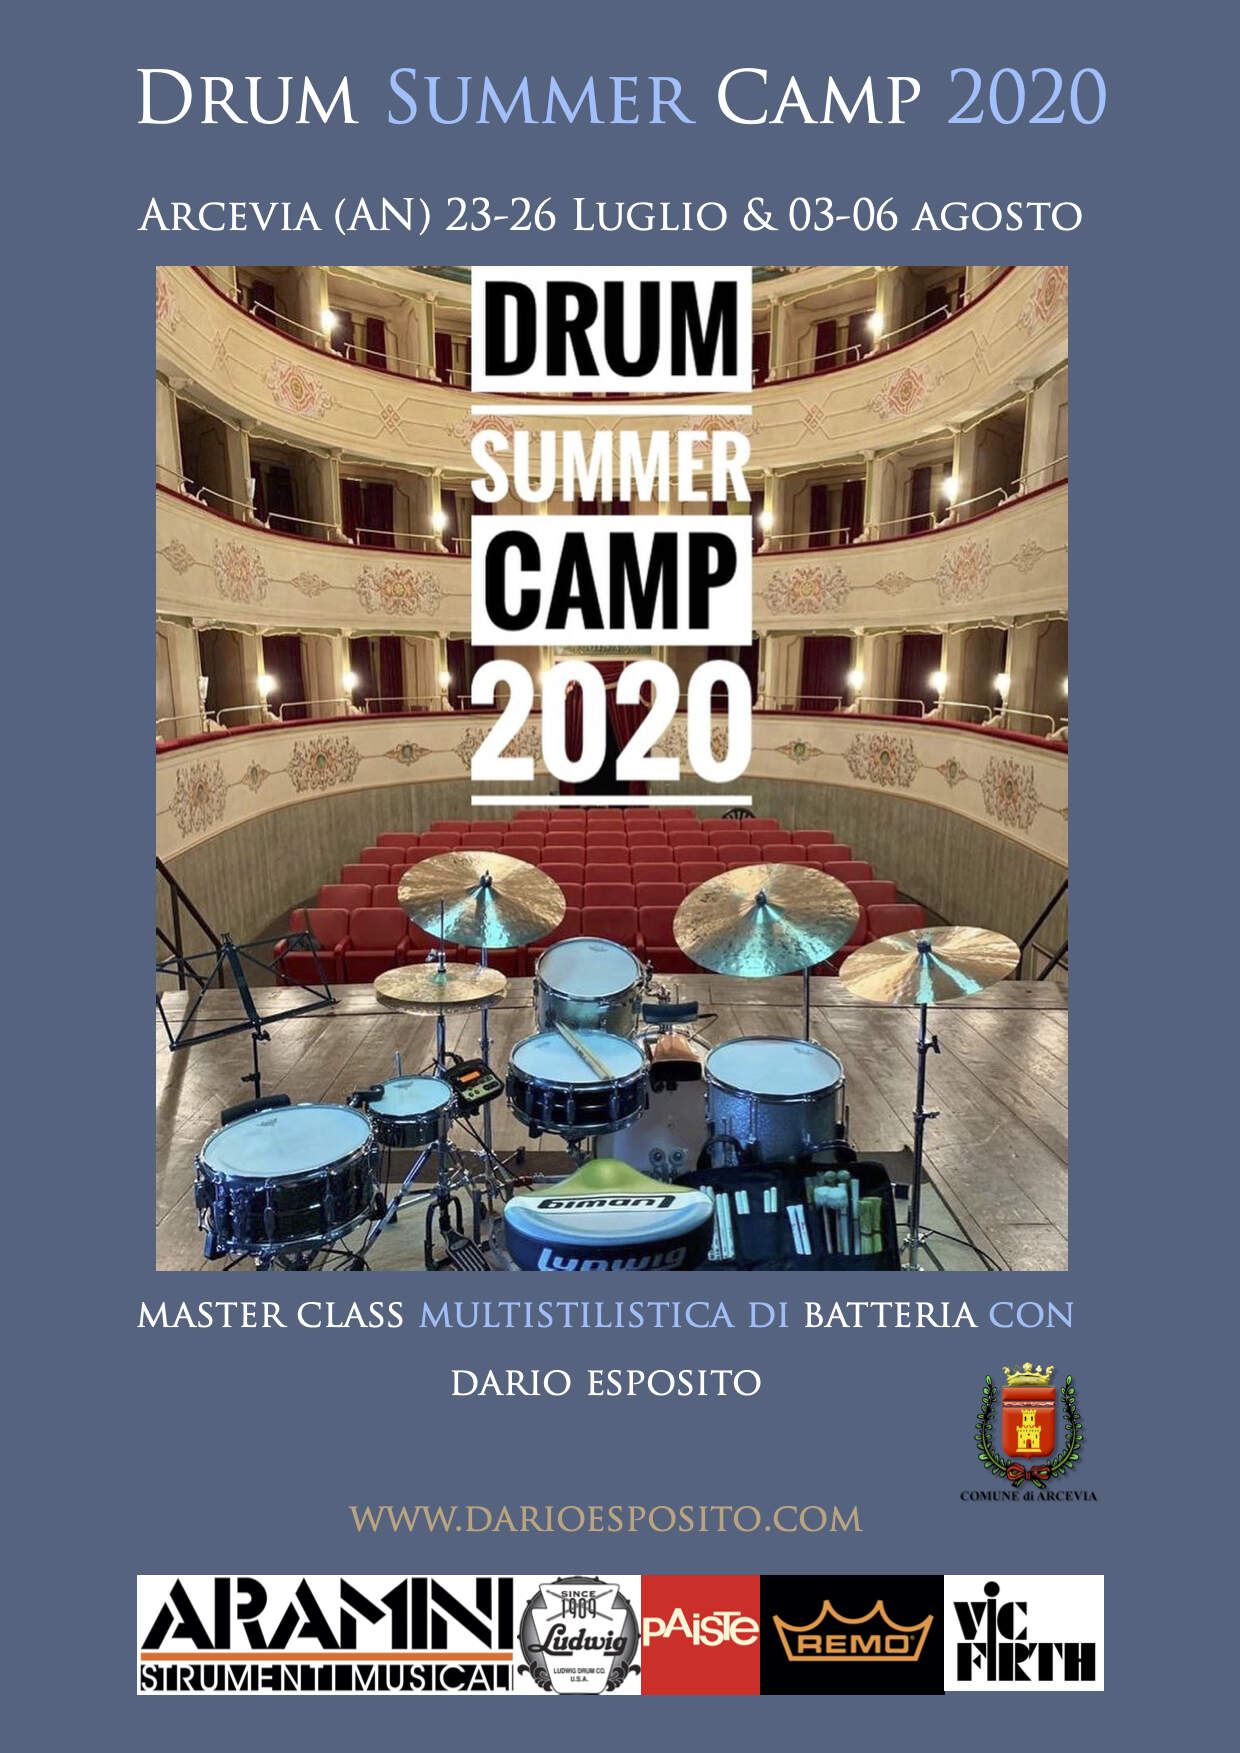 Drum Summer Camp 2020